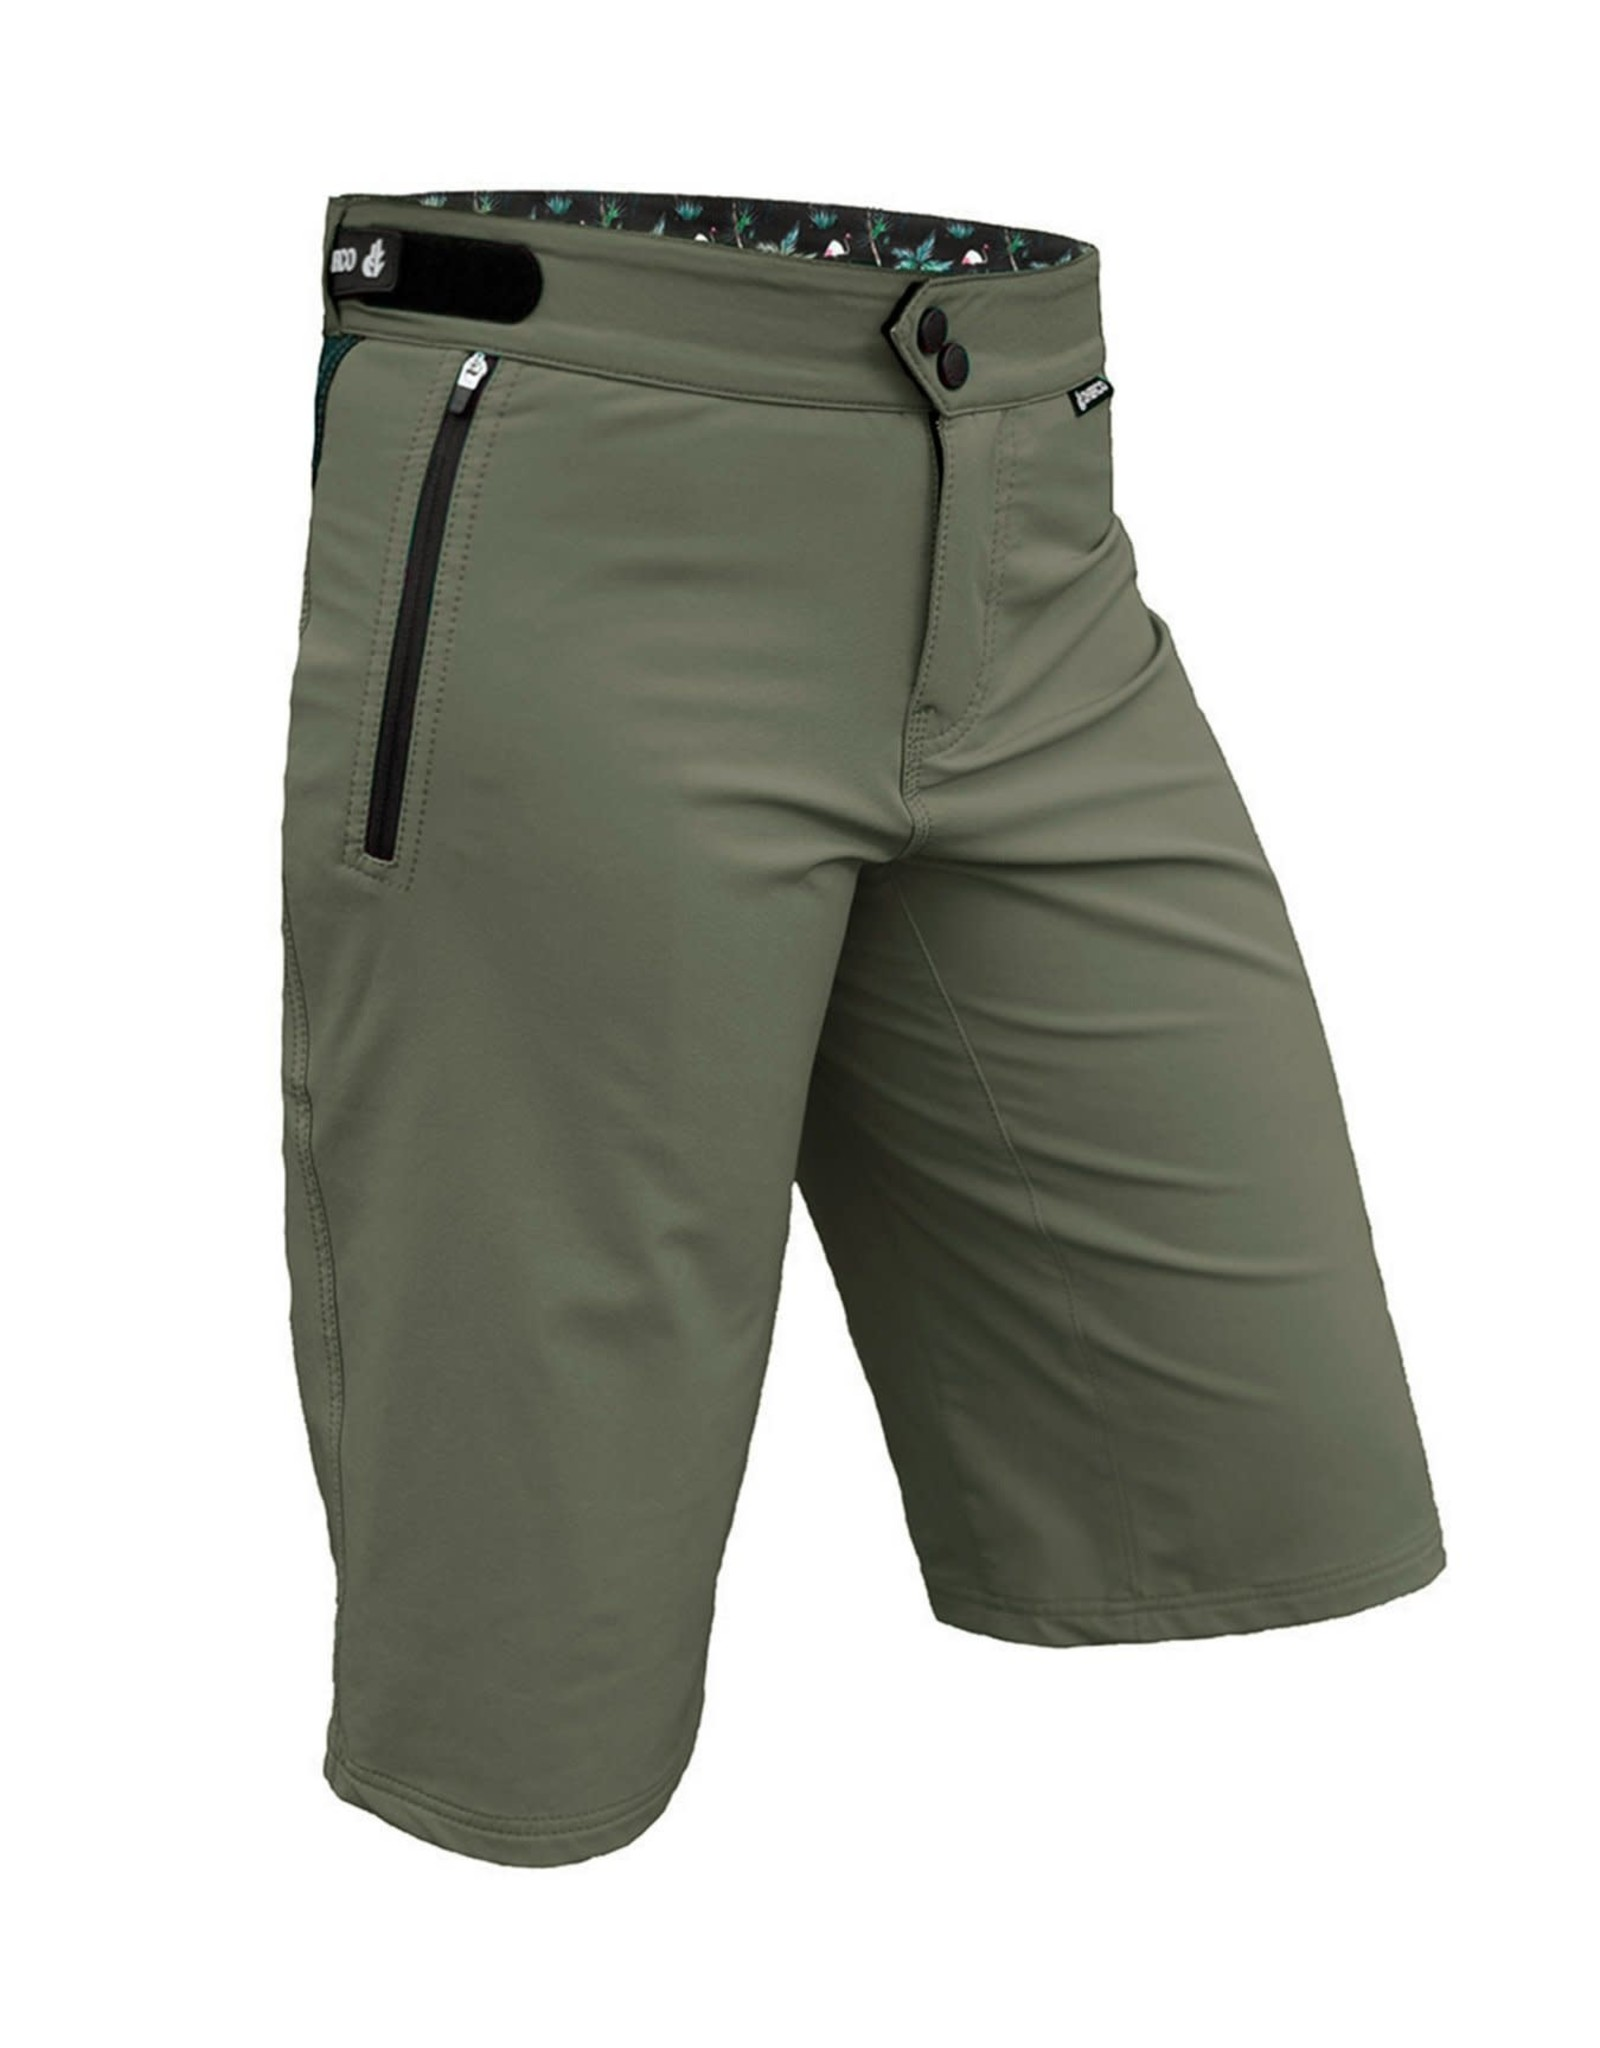 DHaRCO WOMENS GRAVITY SHORTS